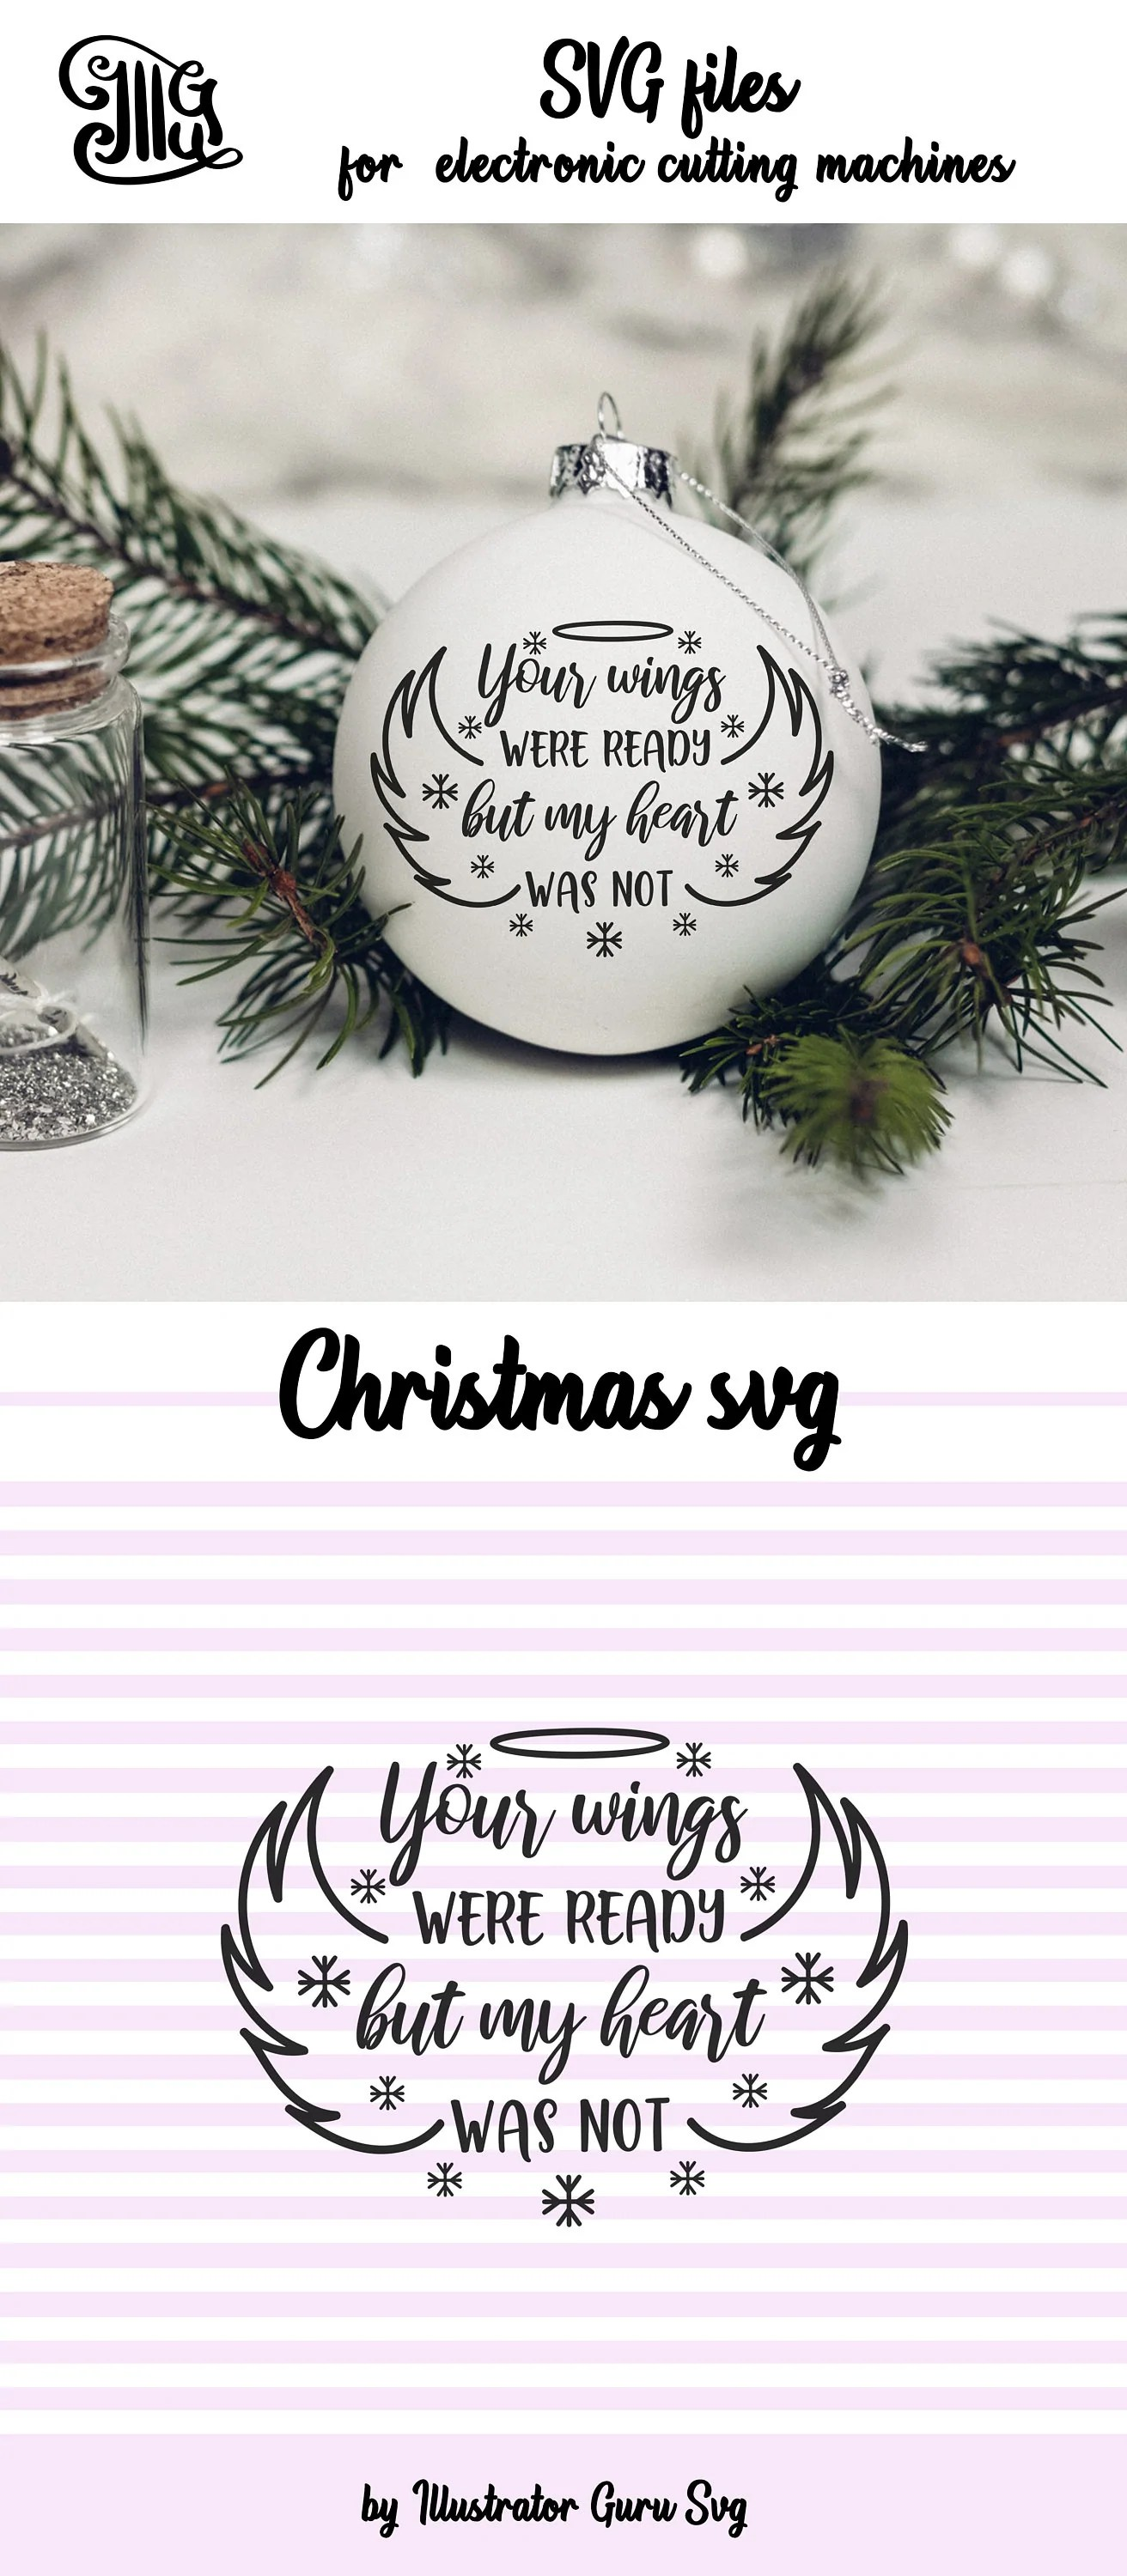 Ornaments Svg : ornaments, Wings, Ready, Heart, Memorial, Christma, Illustrator